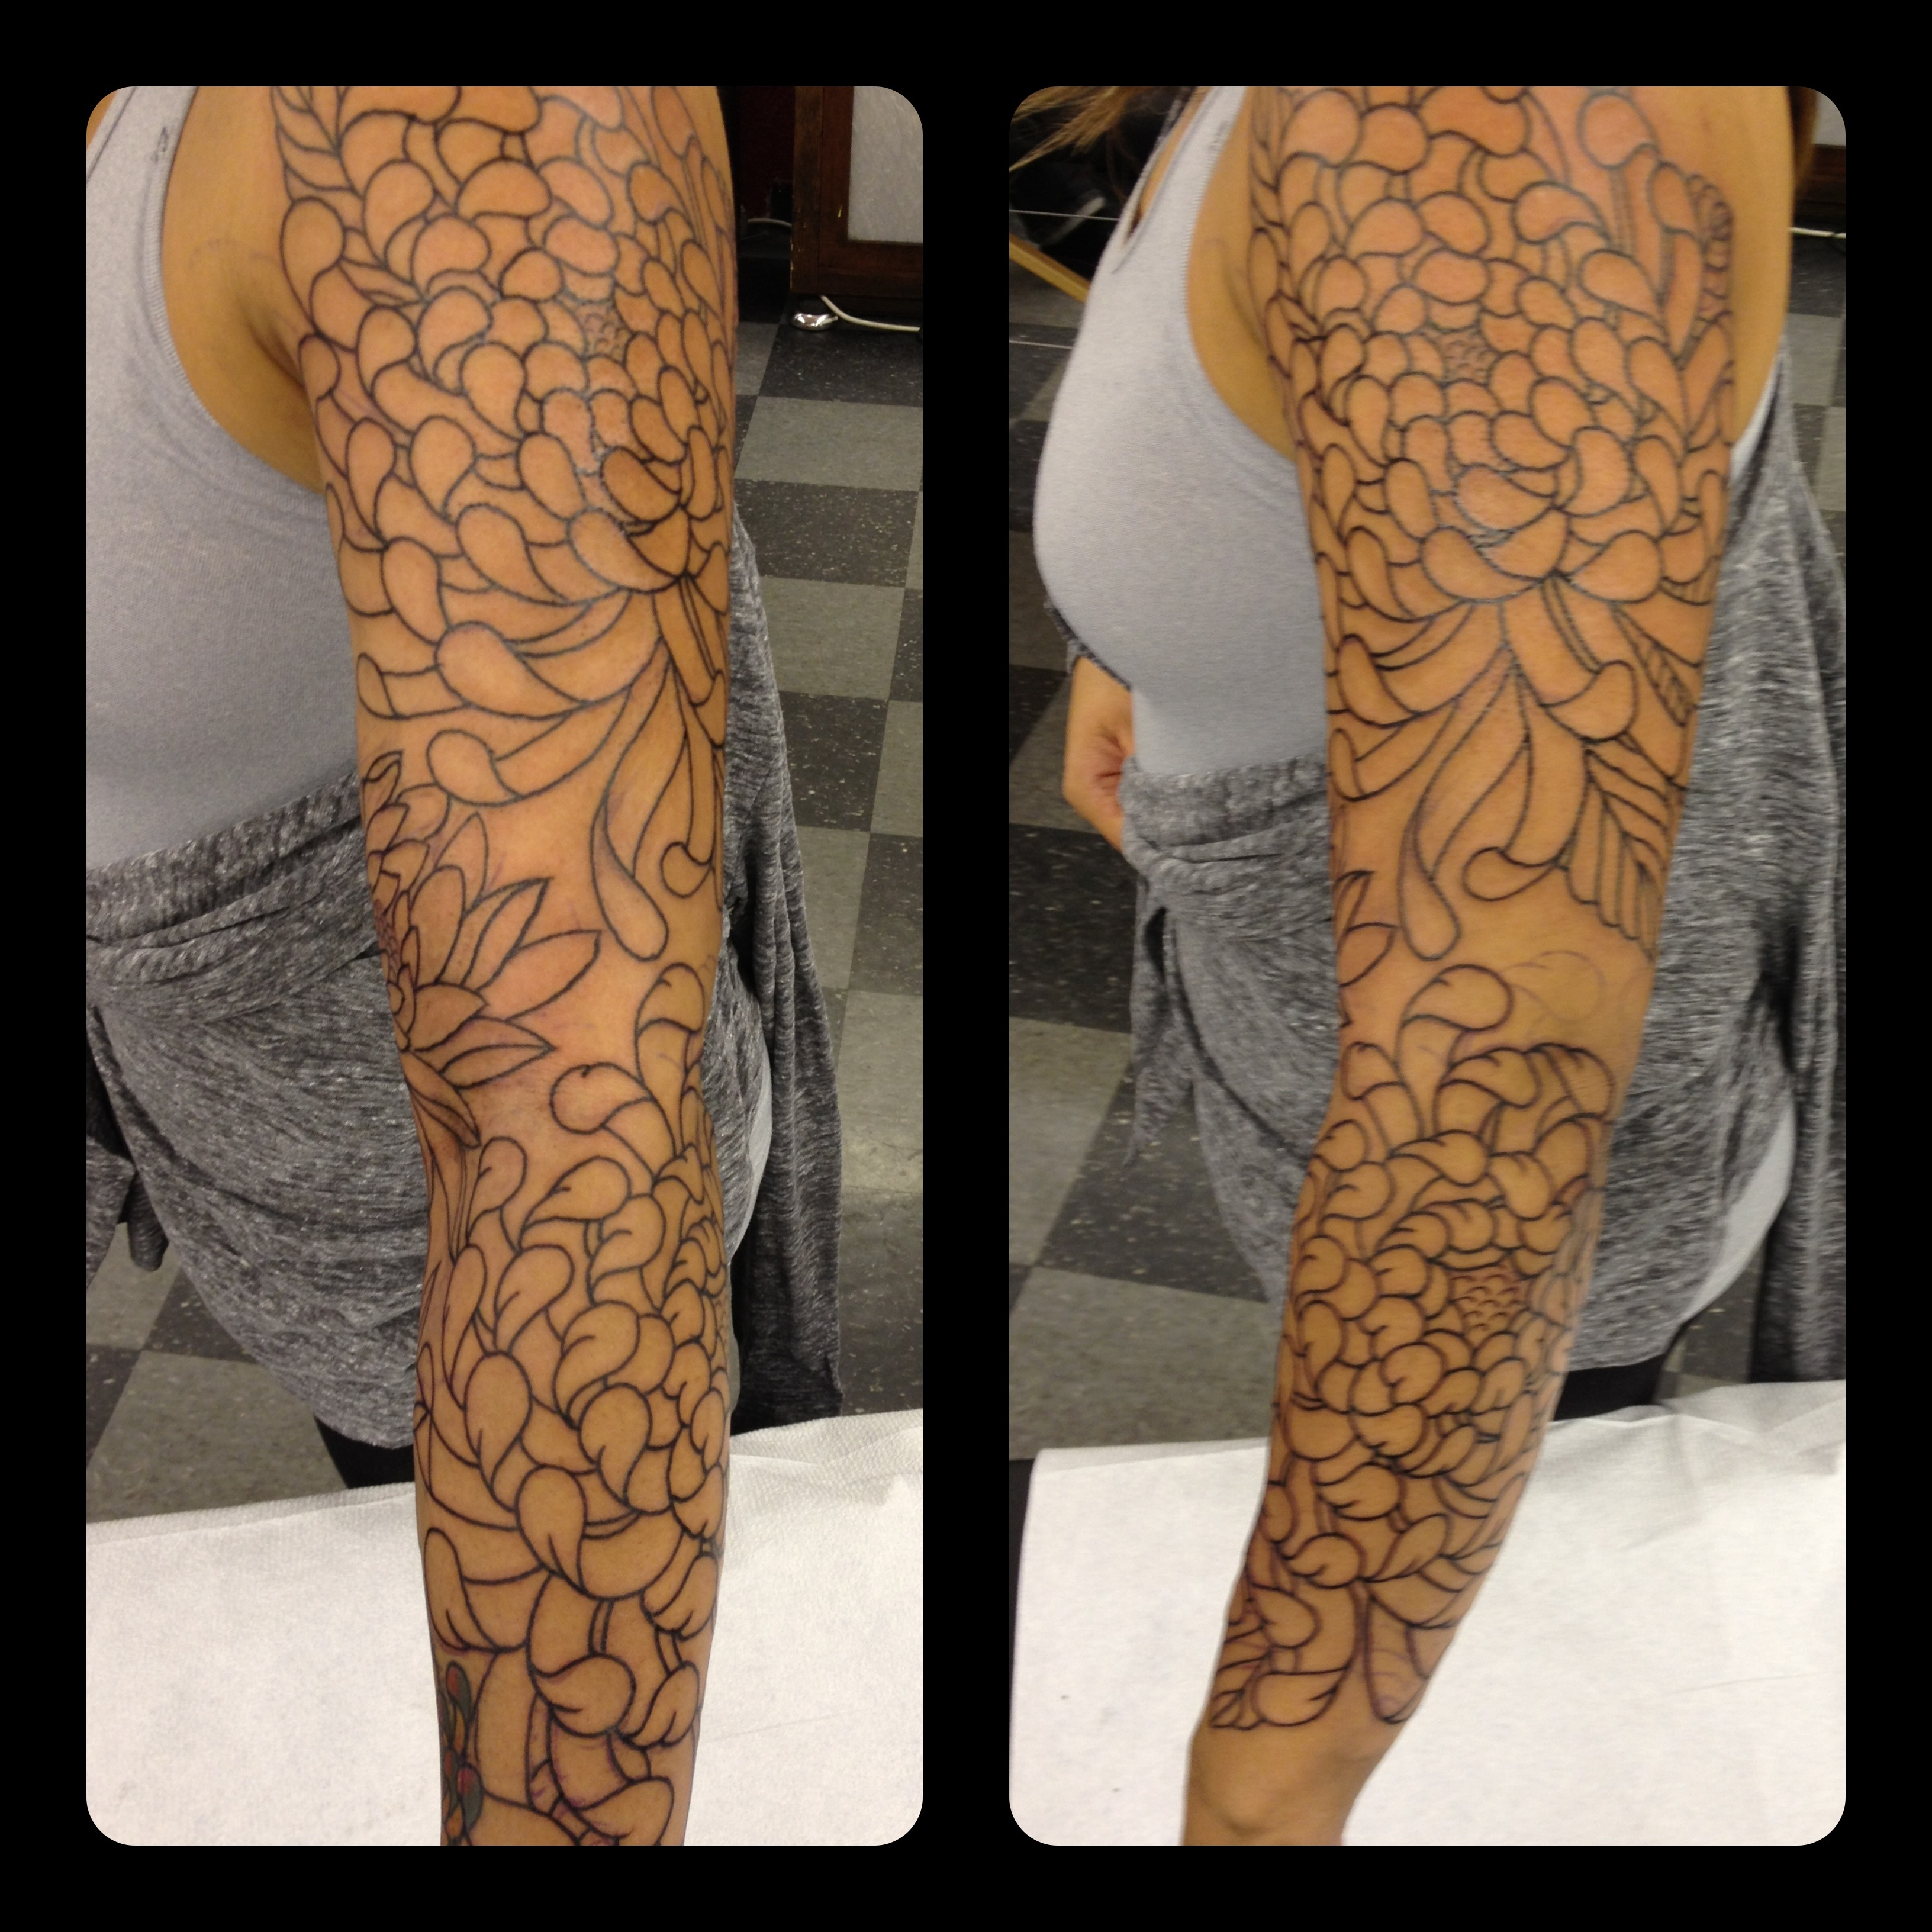 Tattoo Sleeve Shading Filler: 301 Moved Permanently